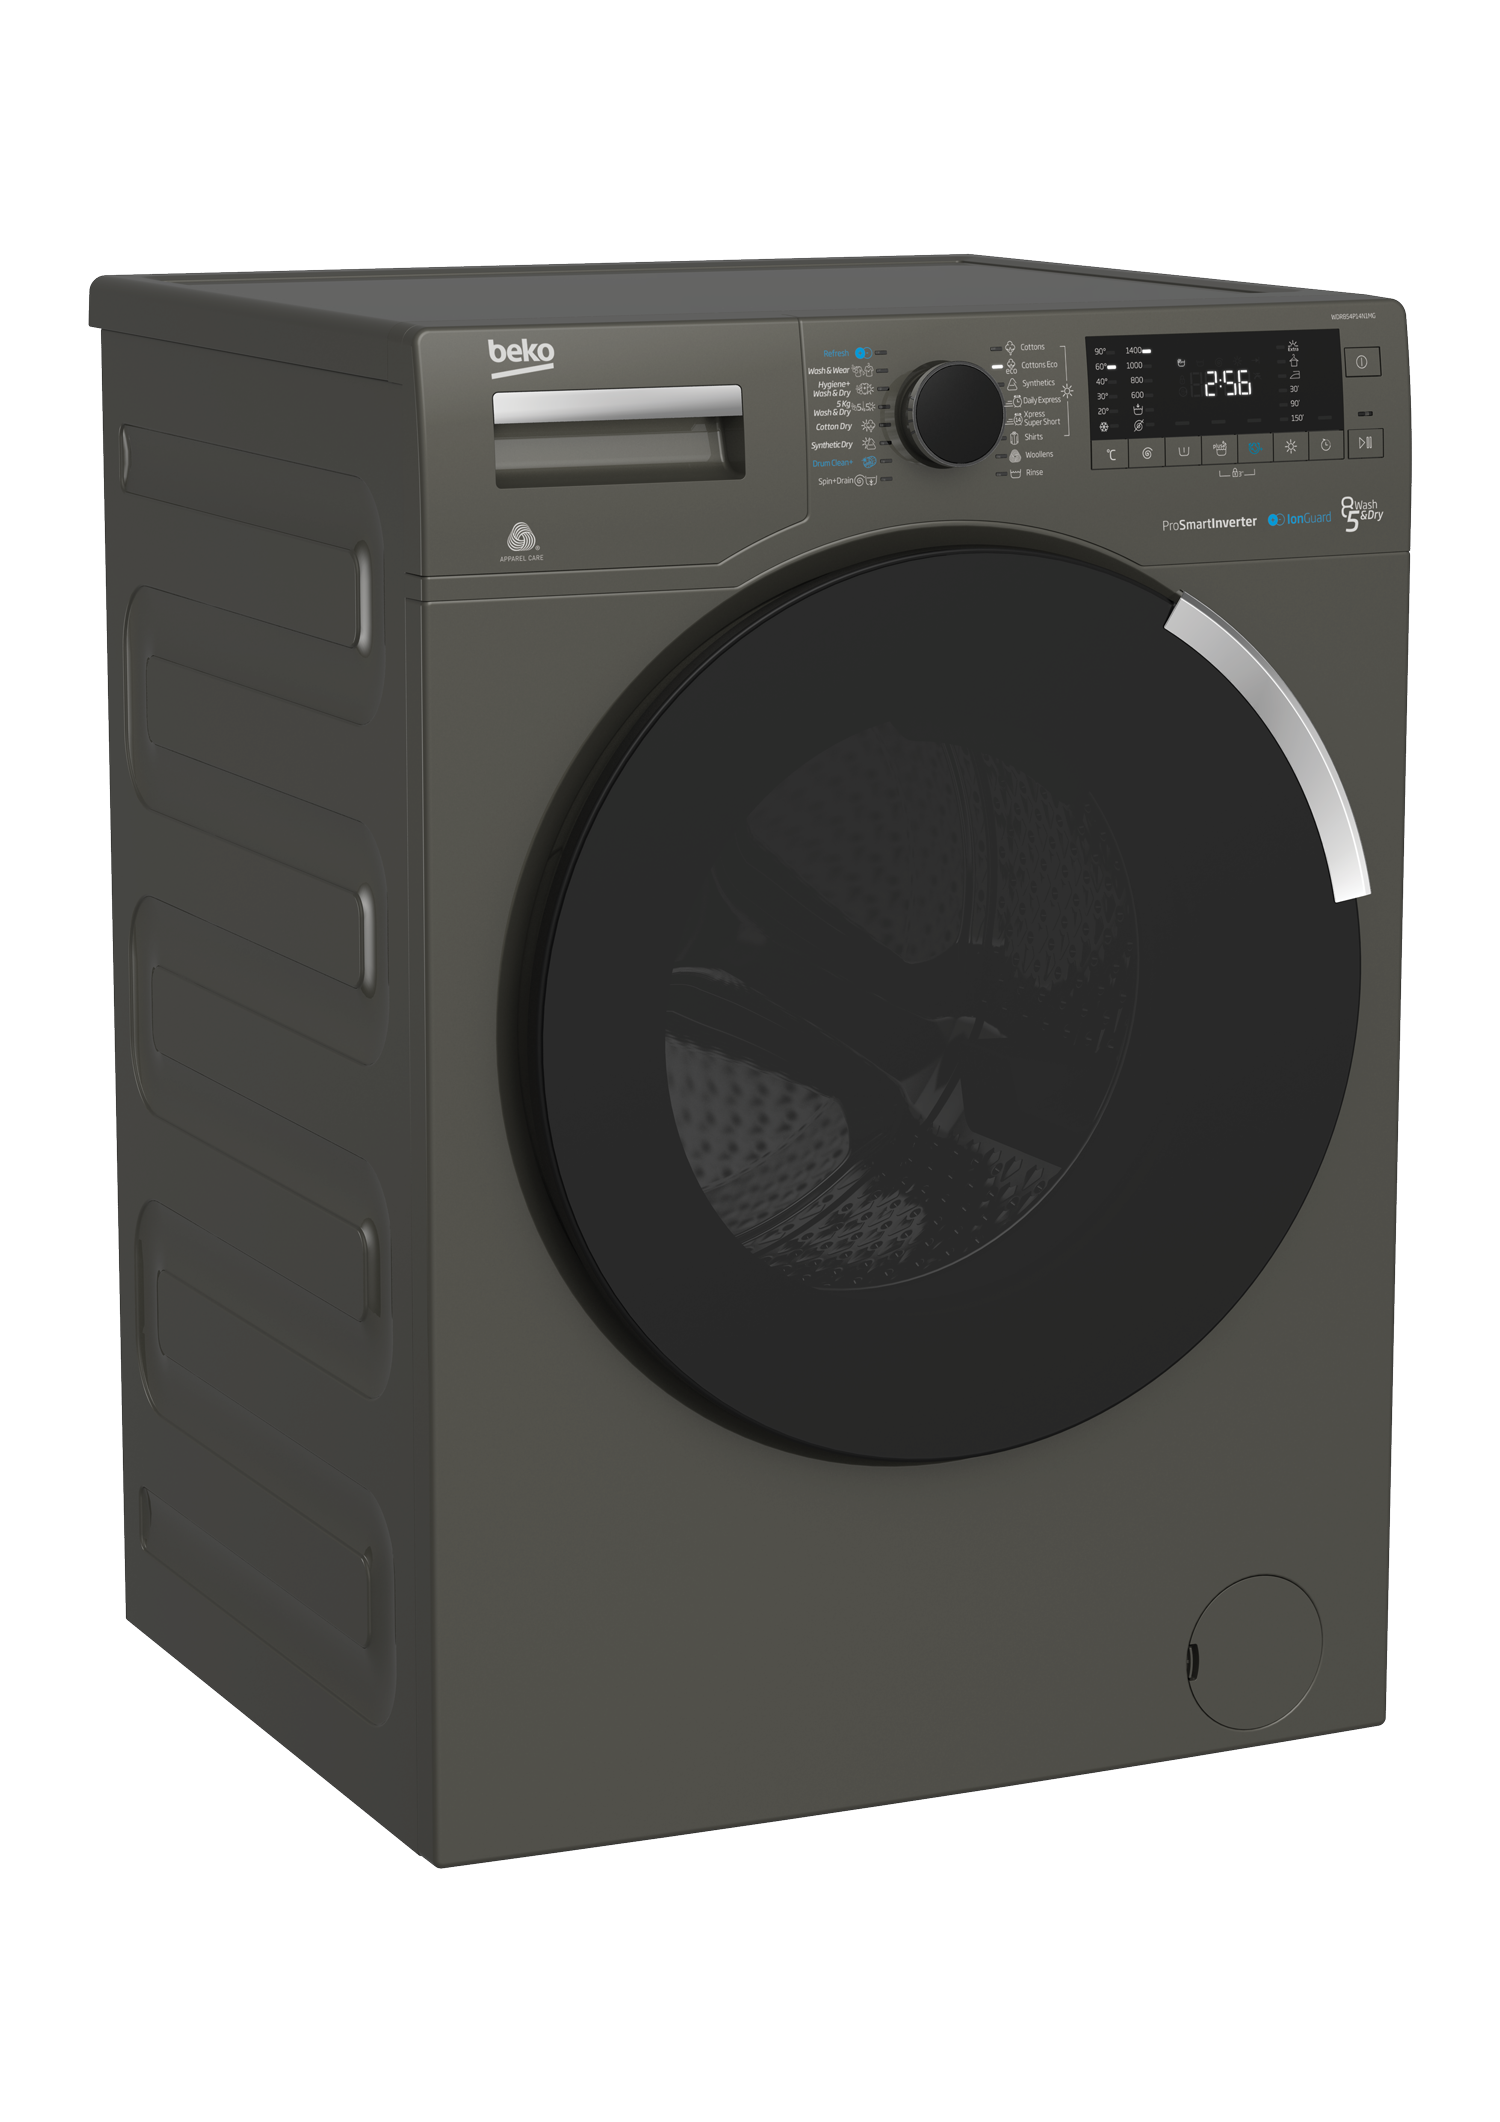 Freestanding Washer Dryer (8 kg / 5 kg, 1400 rpm) WDR854P14N1MG